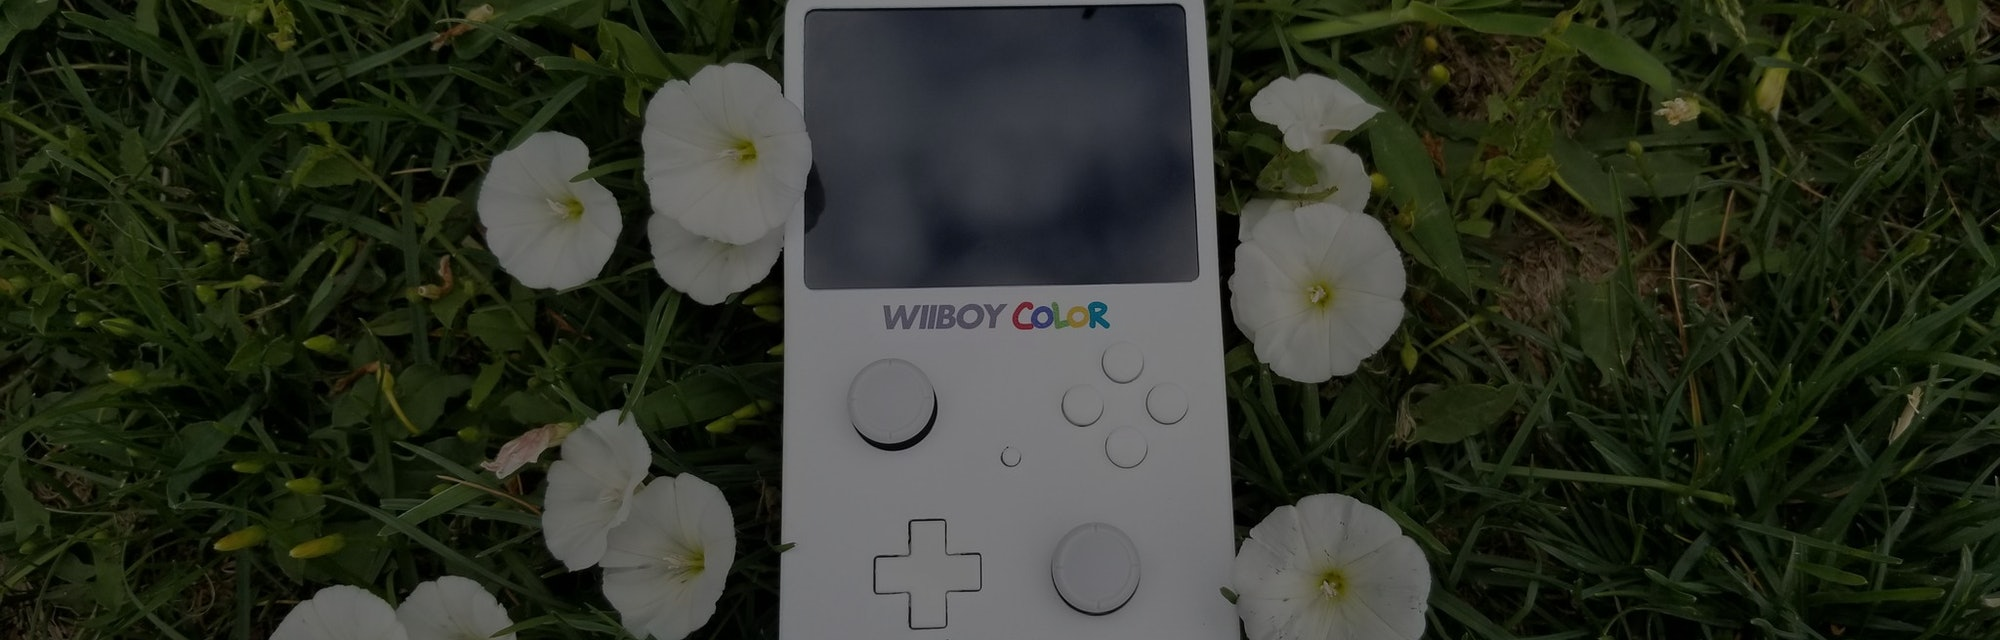 A photo of the WiiBoy Color